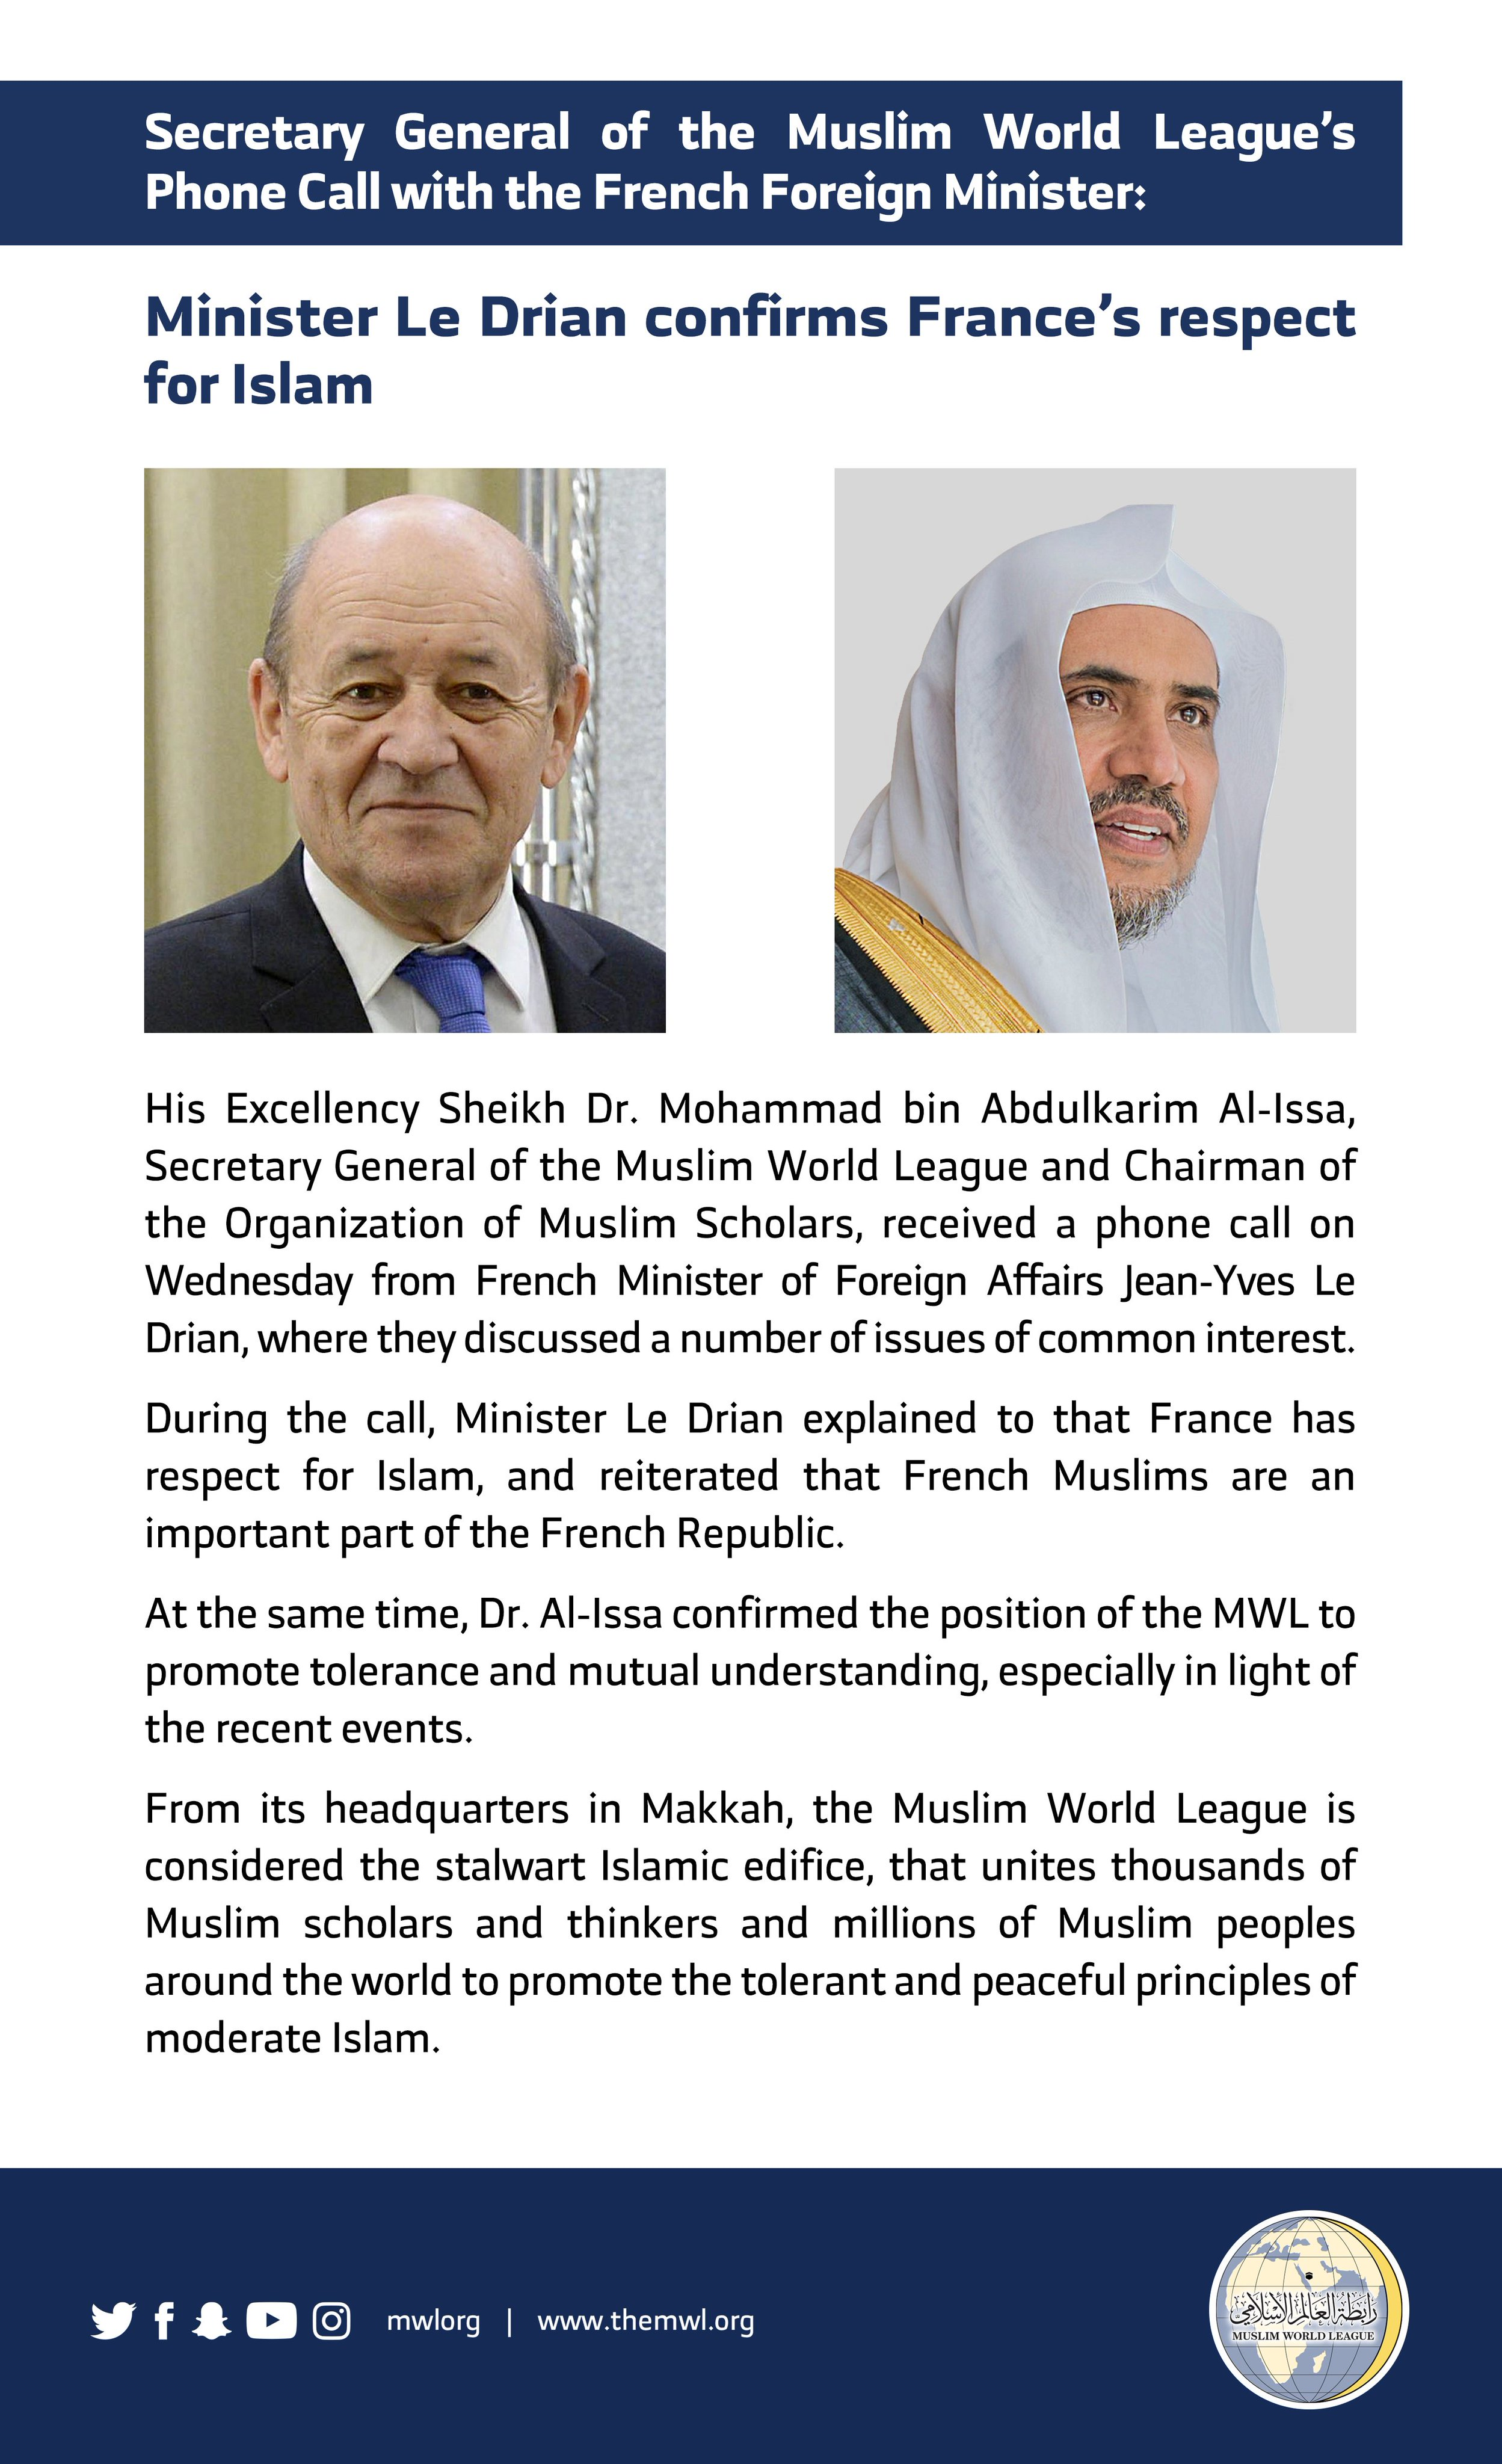 On Wednesday, HE Dr. Mohammad Alissa received a phone call from the French Minister of Foreign Affairs to discuss recent events & reiterate France's respect for Islam.